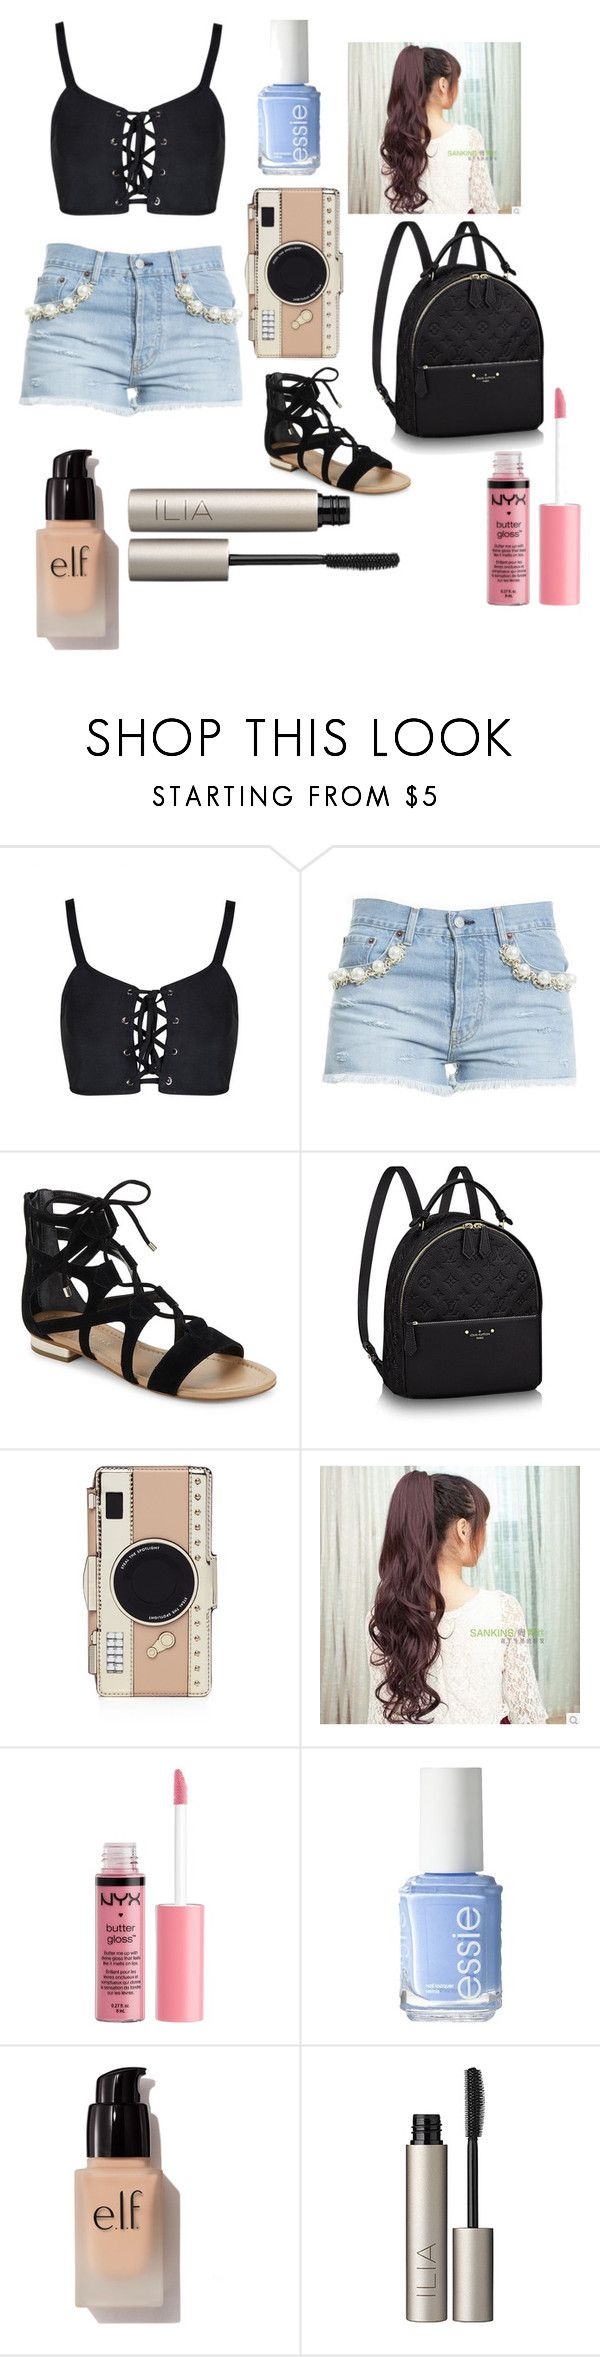 """""""travel outfit"""" by xxtia-ramseyxx on Polyvore featuring Forte Couture, Saks Fifth Avenue, Kate Spade, Charlotte Russe, Essie, e.l.f. and Ilia"""